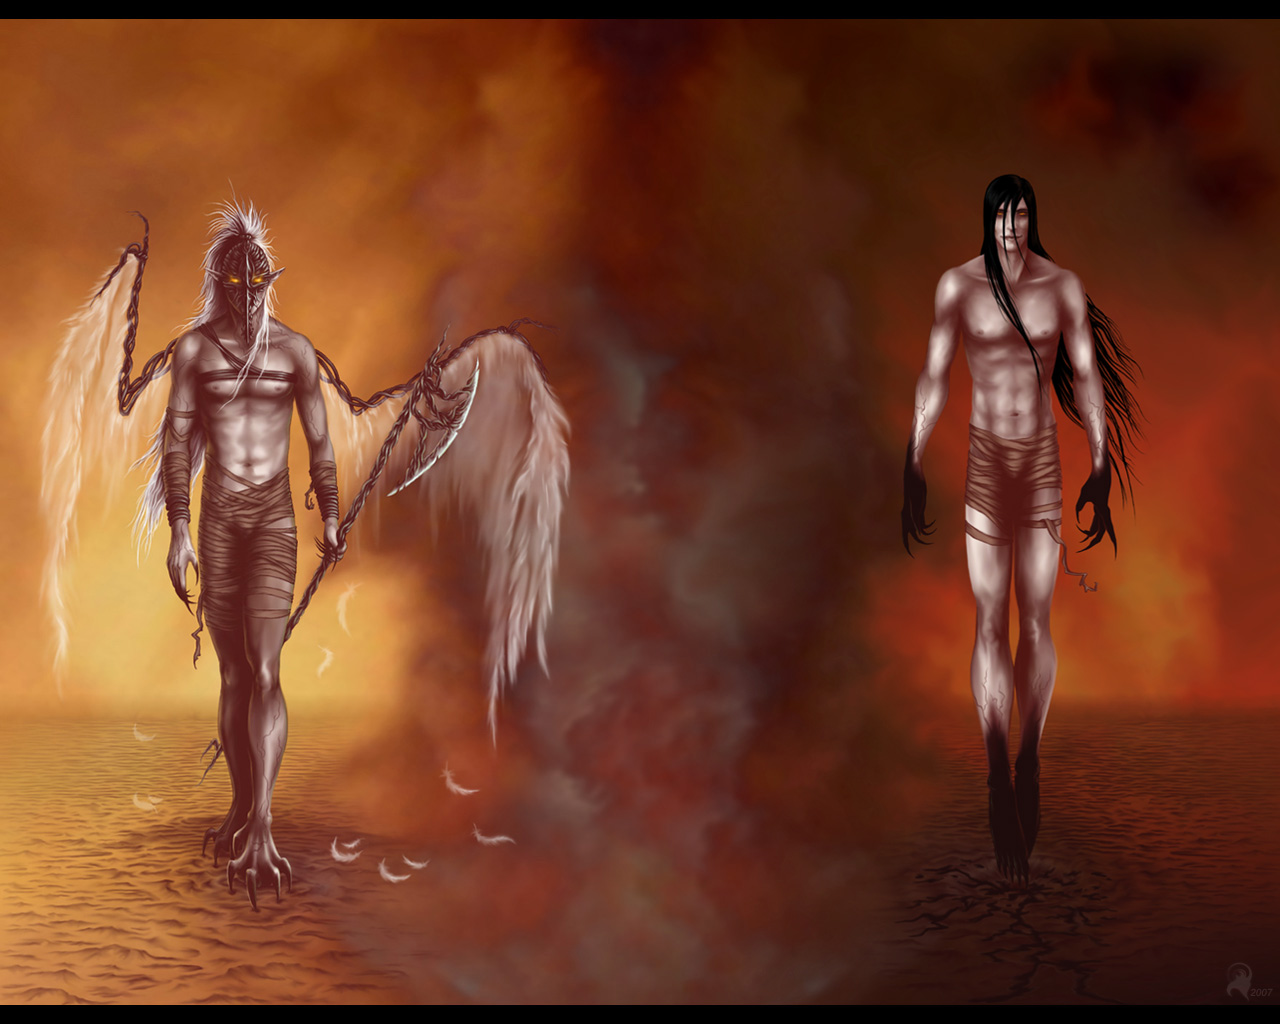 devil angel love 1280x1024